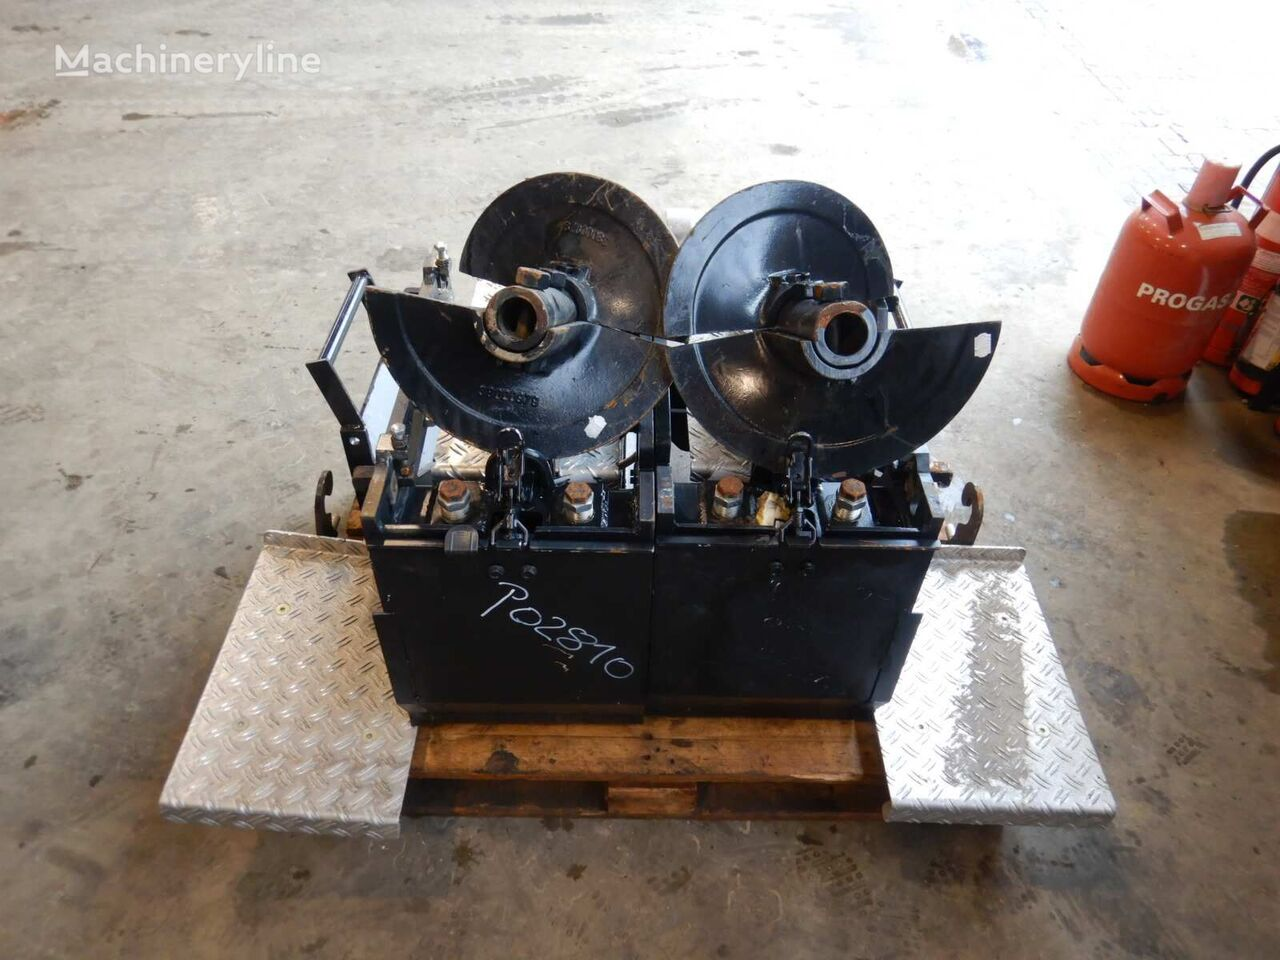 Anbauteile  EB 51 Gas/ 700 mm other operating parts for DEMAG DF 135 C asphalt paver